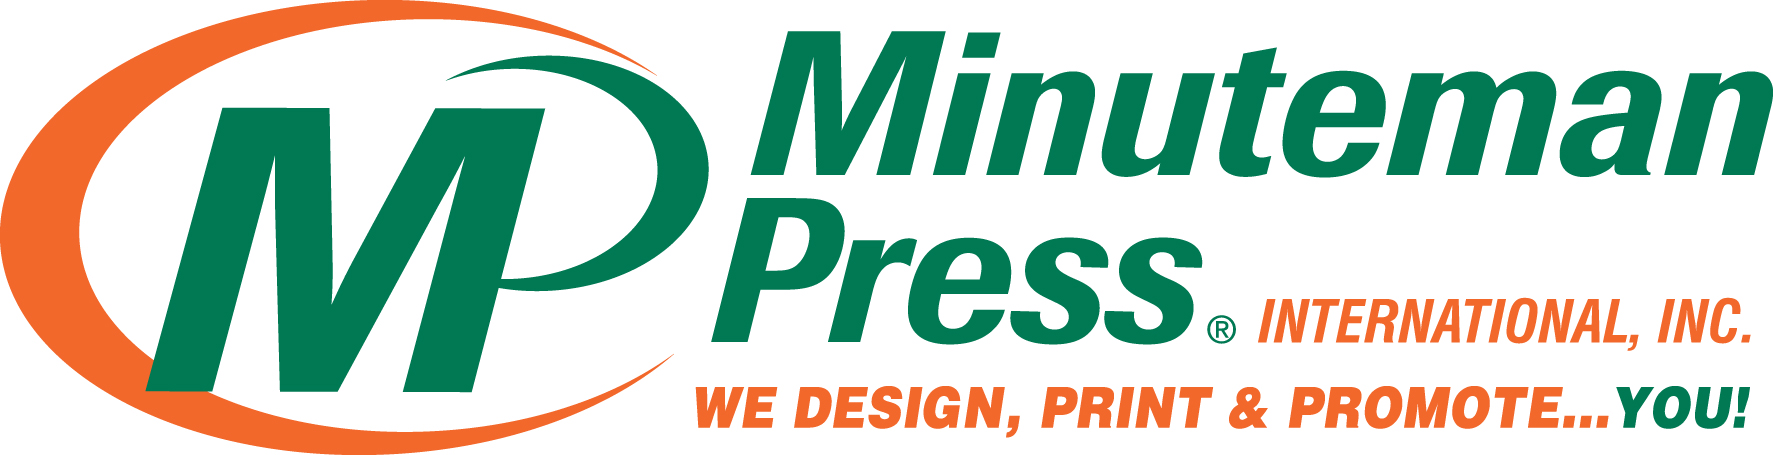 Minuteman Press International Inc